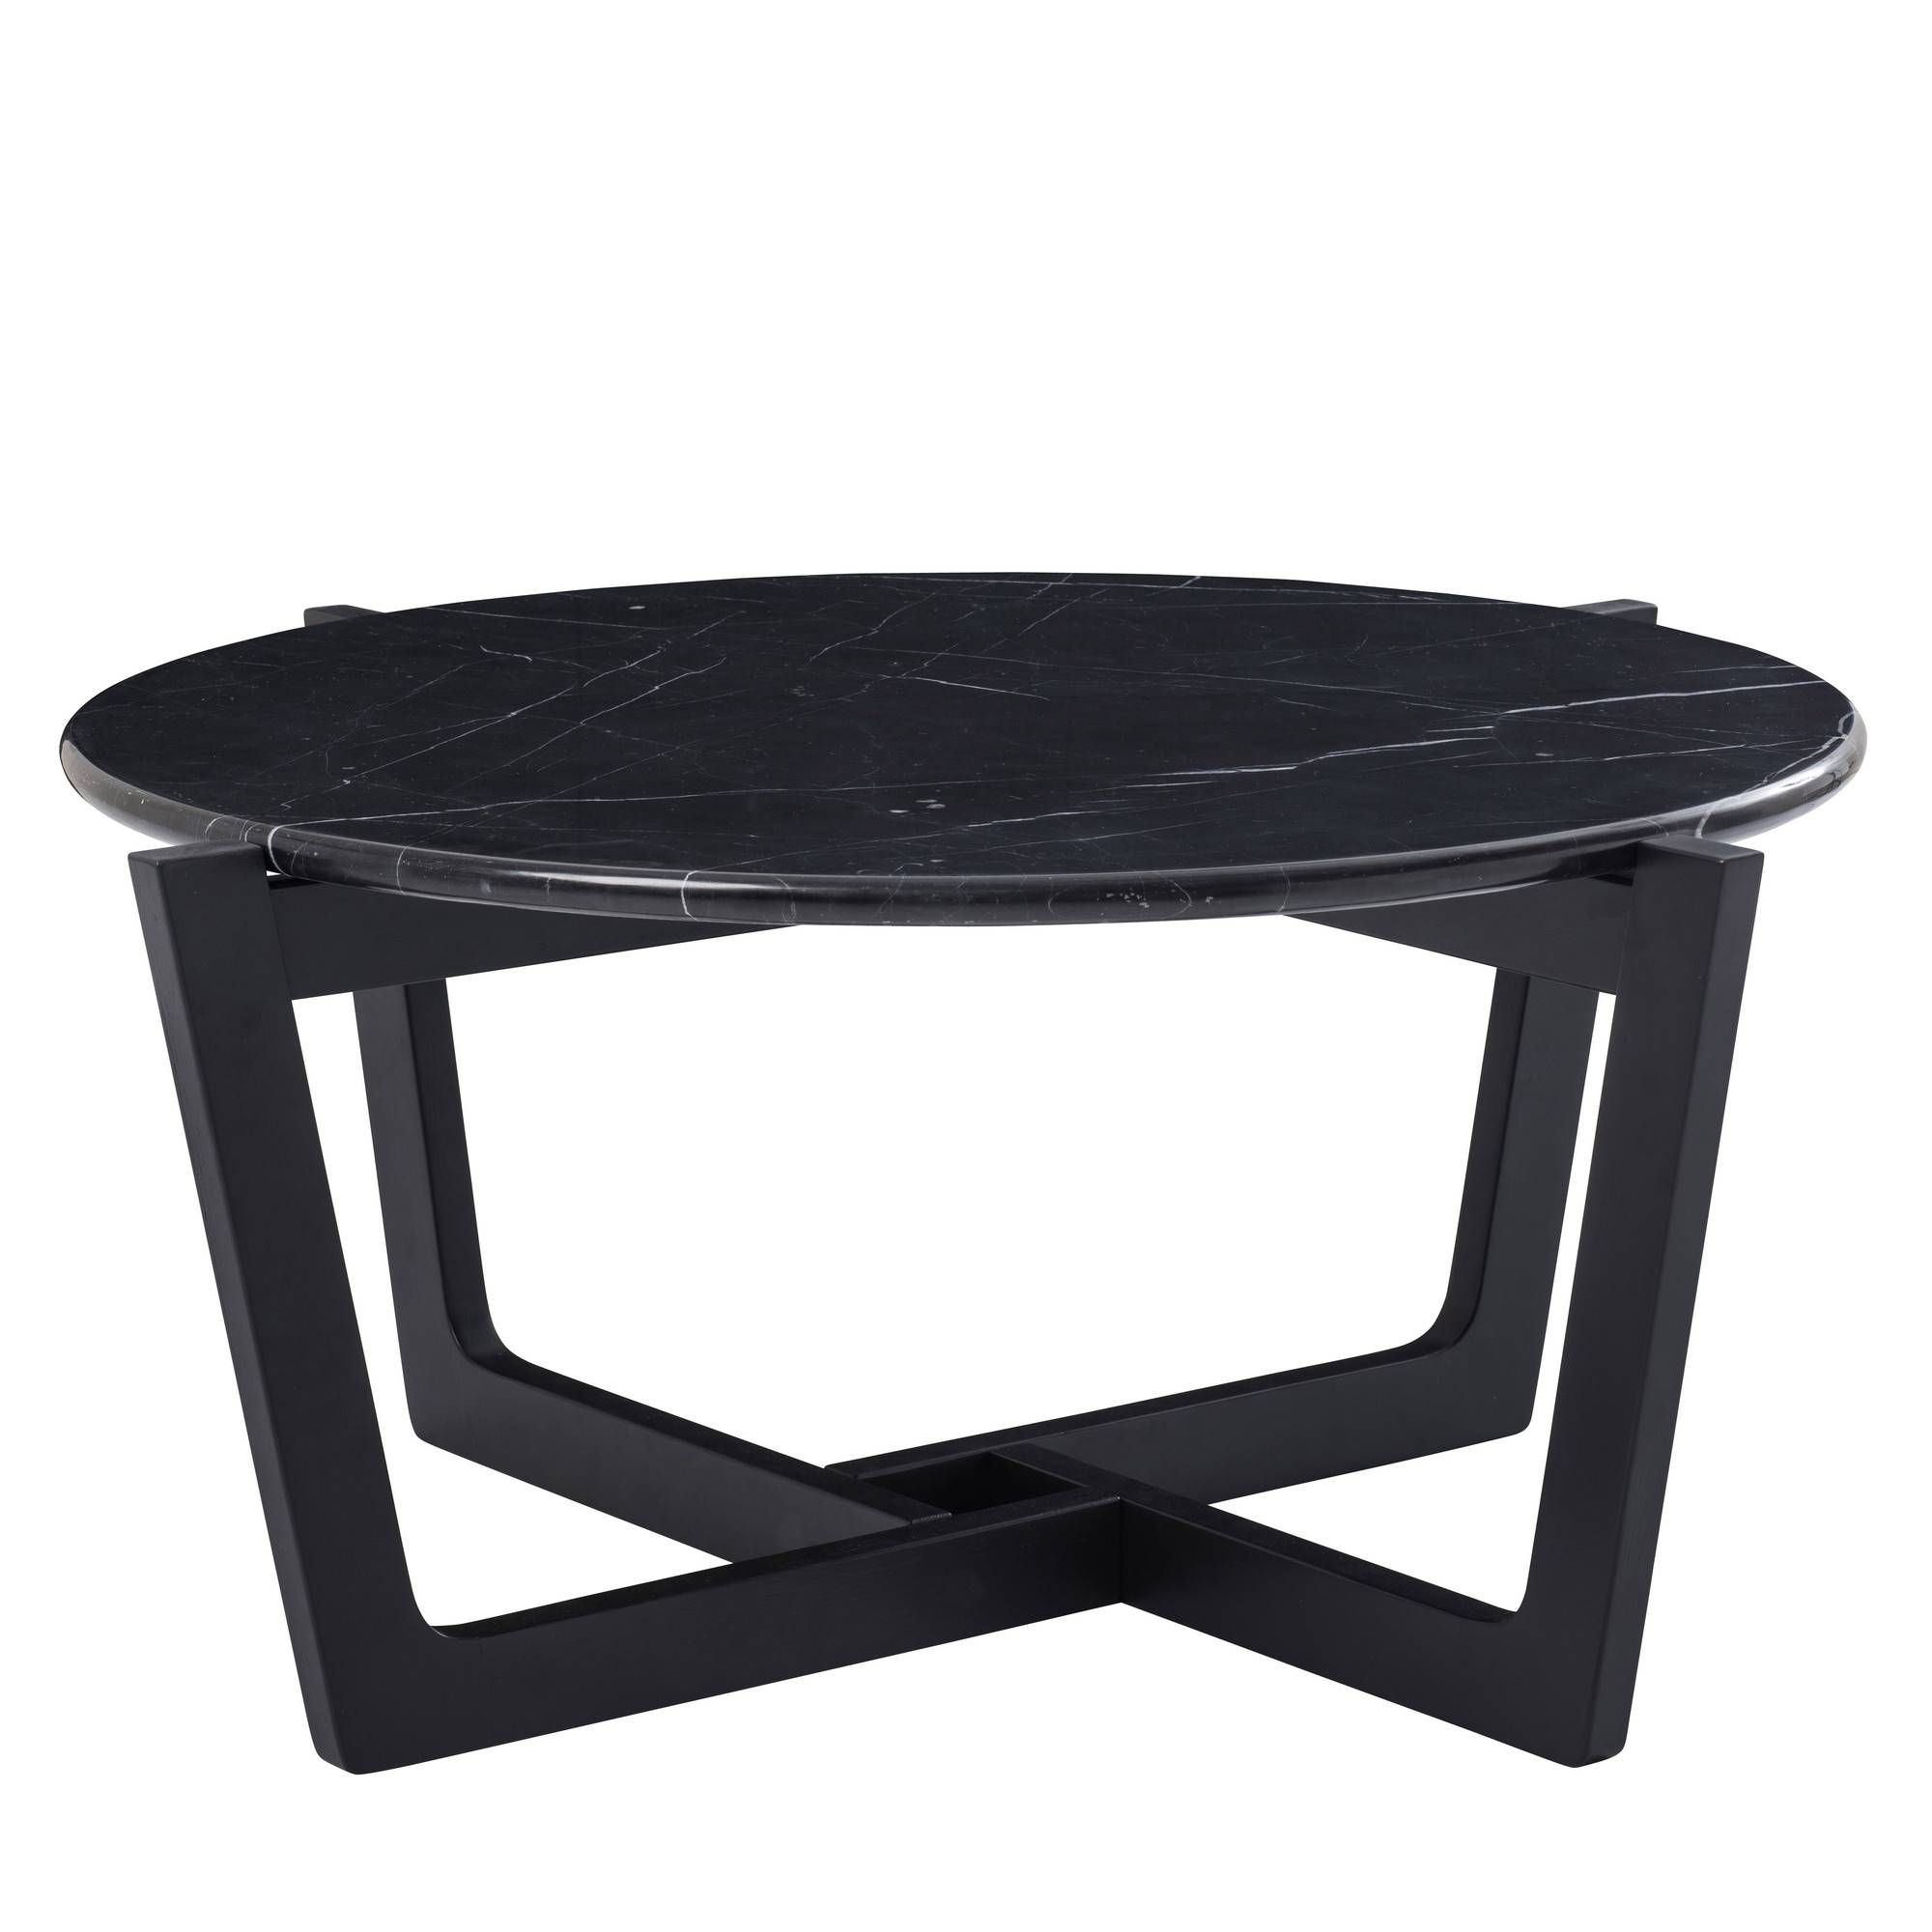 Monterey Black Marble Coffee Table | Temple & Webster regarding Monterey Coffee Tables (Image 17 of 30)